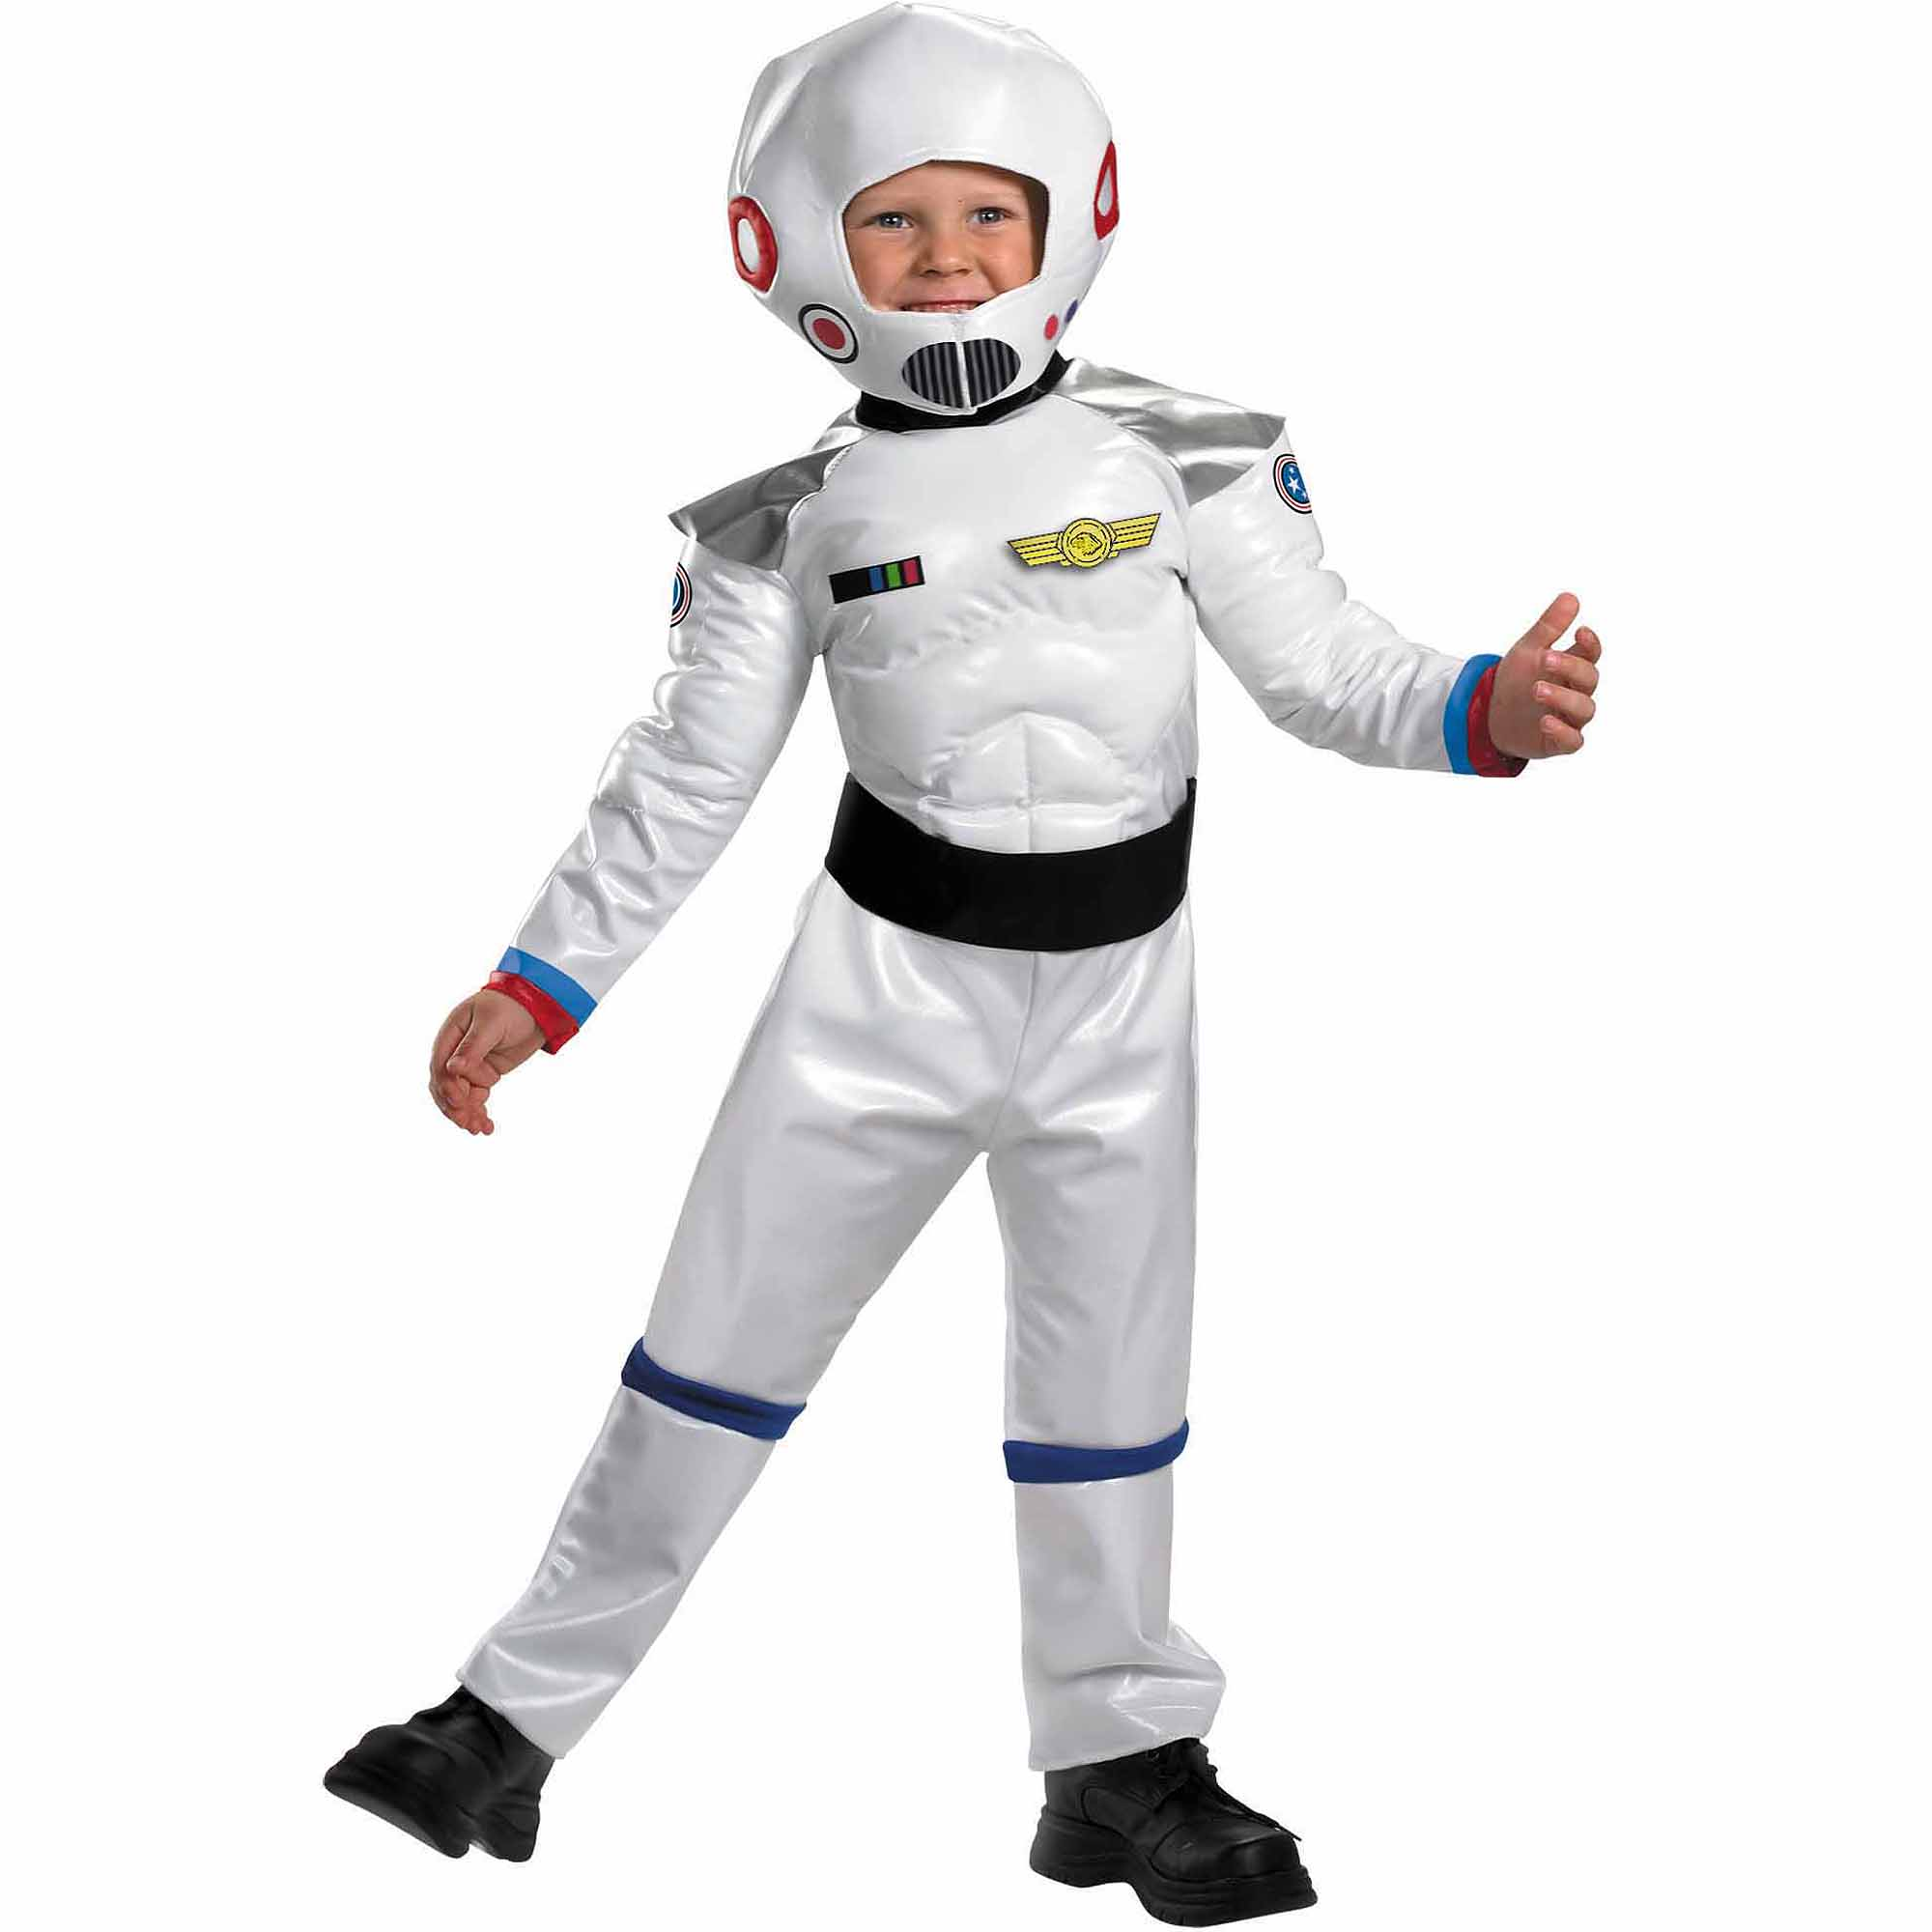 Blast Off Astronaut Child Halloween Costume